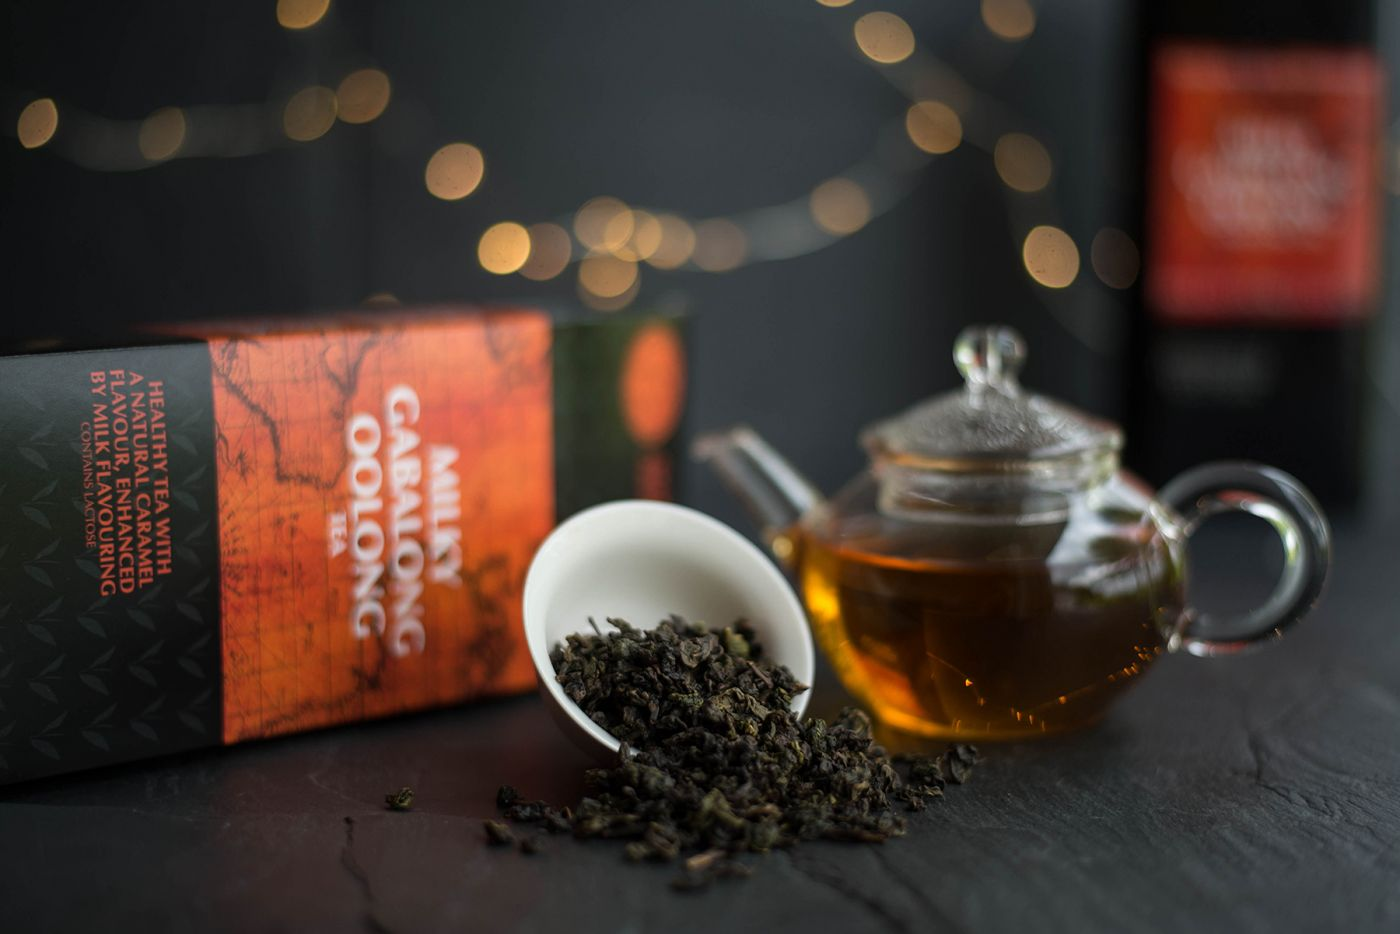 Milky Gabalong Oolong Tea